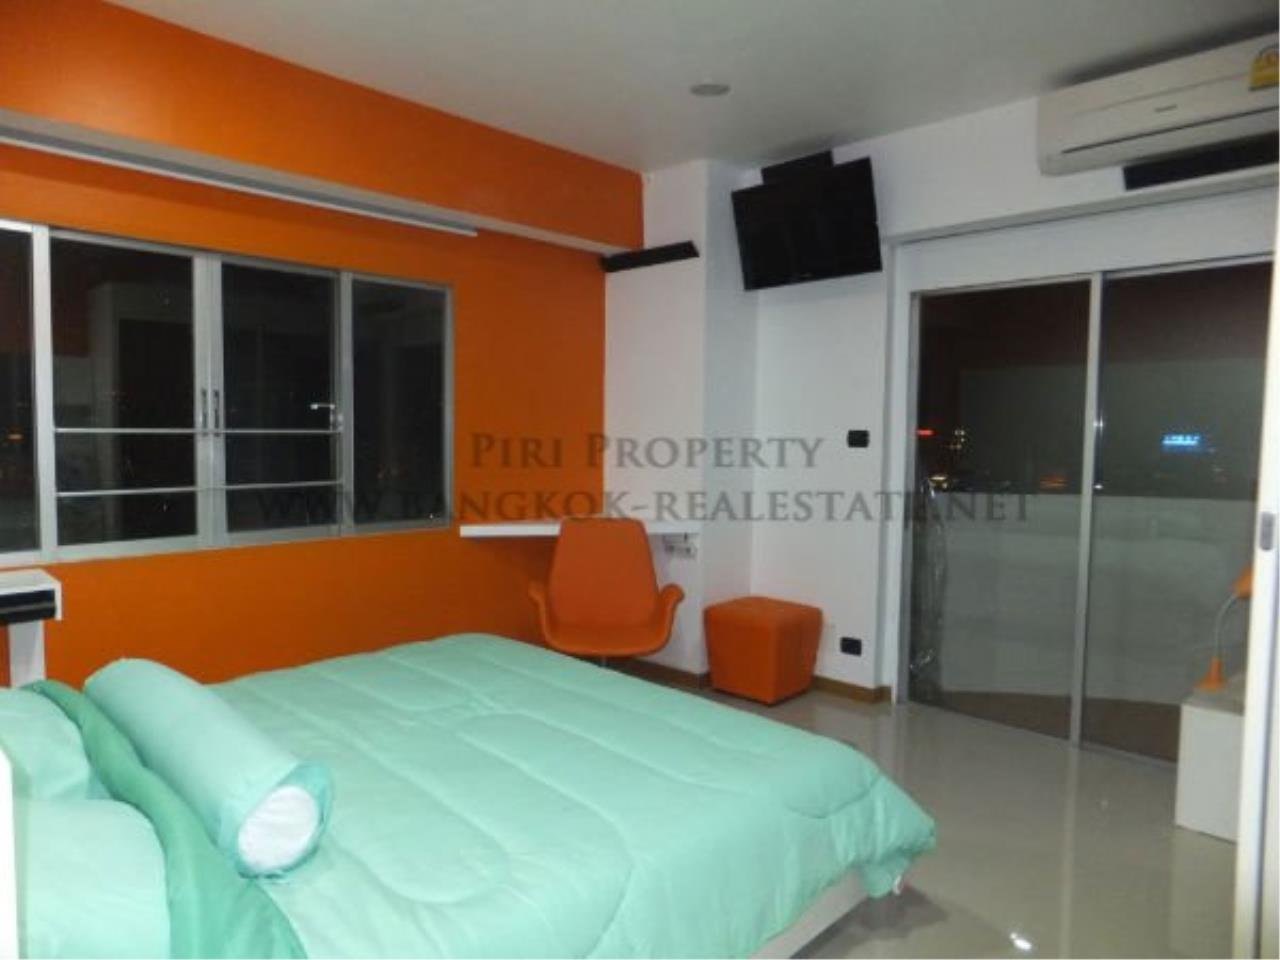 Piri Property Agency's Spacious and Renovated 3 BR Condo near Ploenchit BTS 5